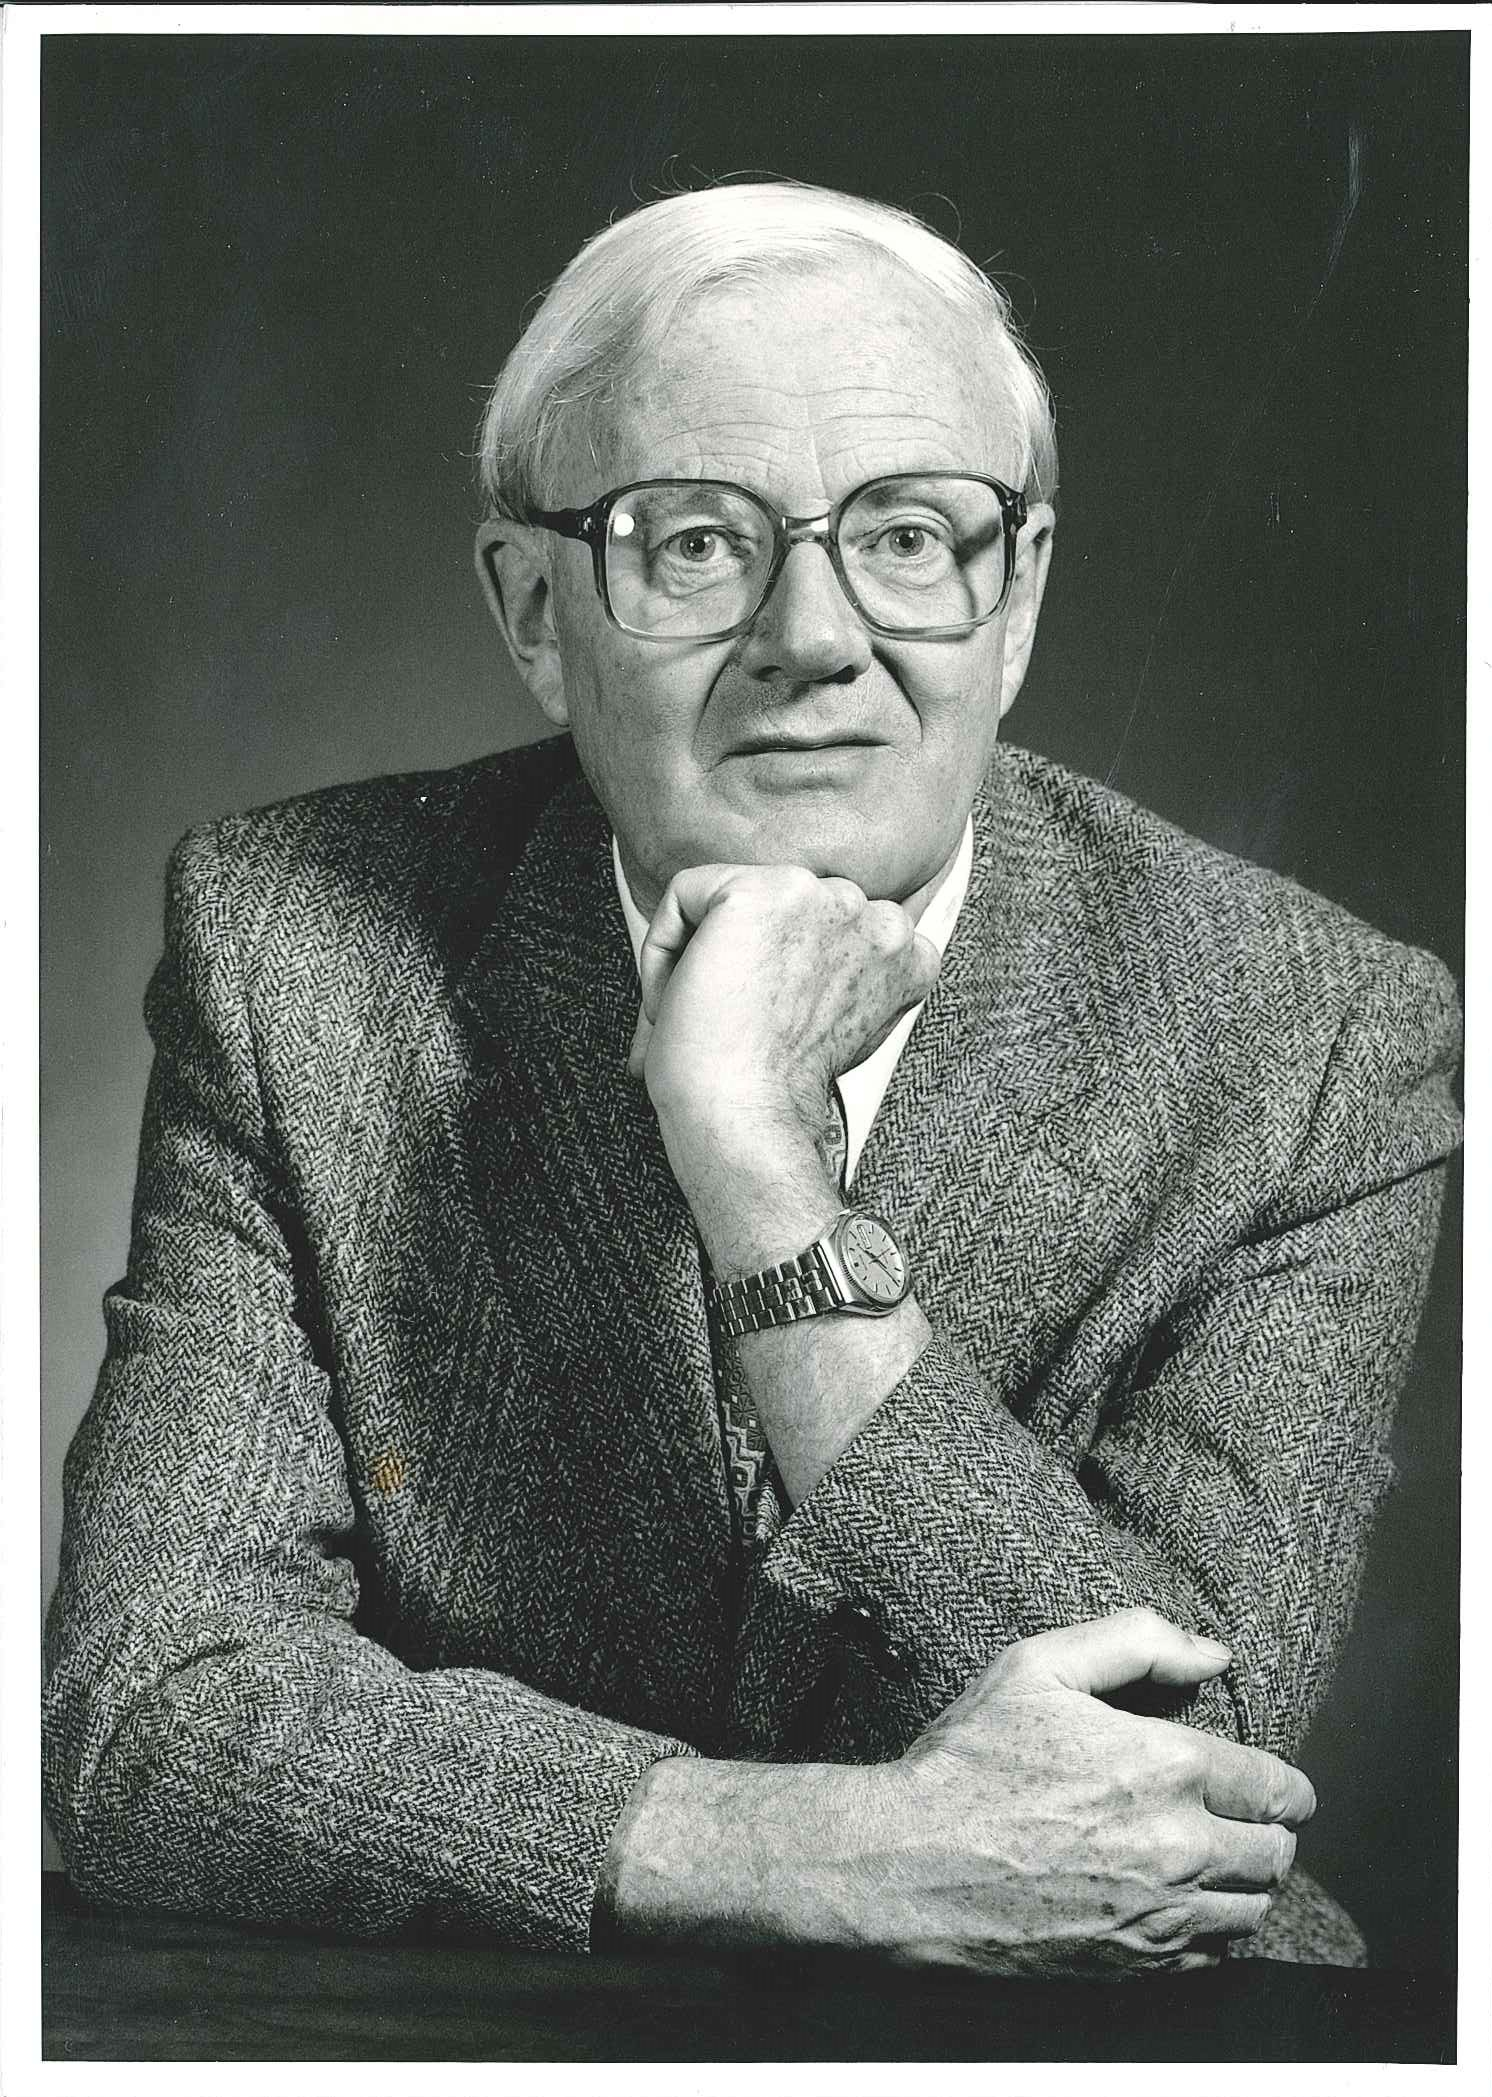 Professor William Tutte